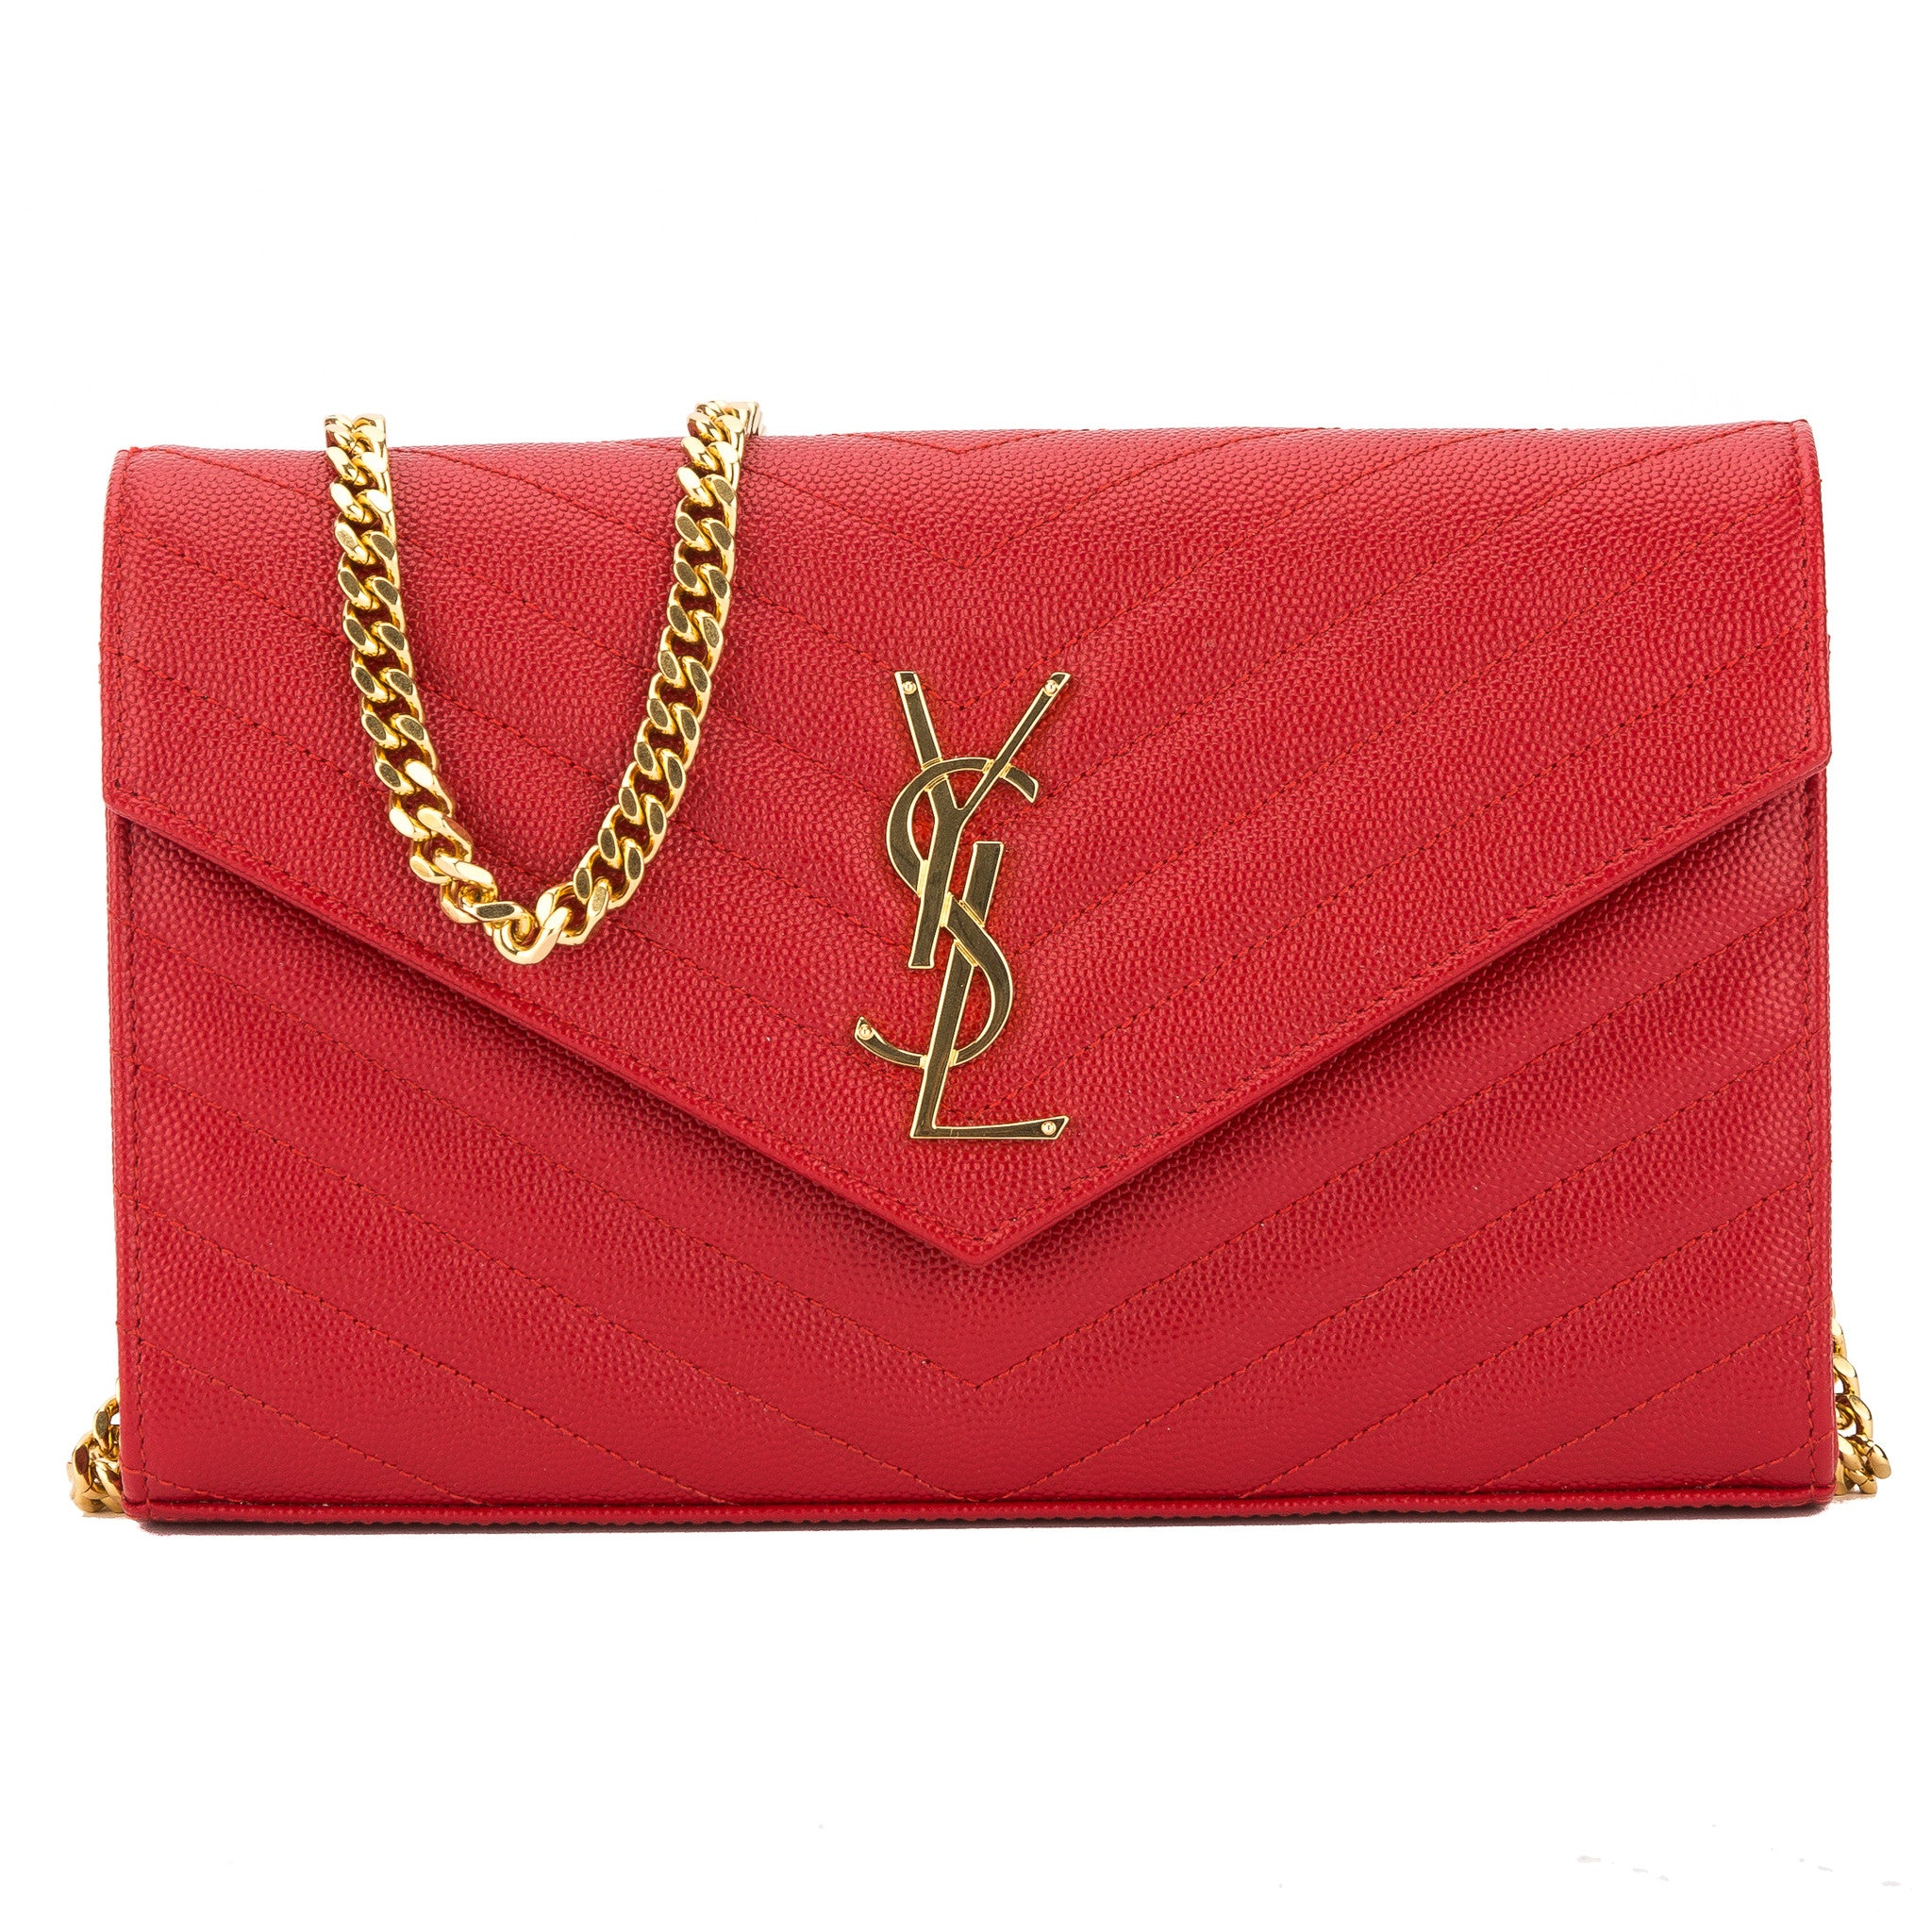 807bbf666636a Yves Saint Laurent Saint Laurent Lipstick Red Matelasse Leather Monogram Chain  Wallet New with Tags